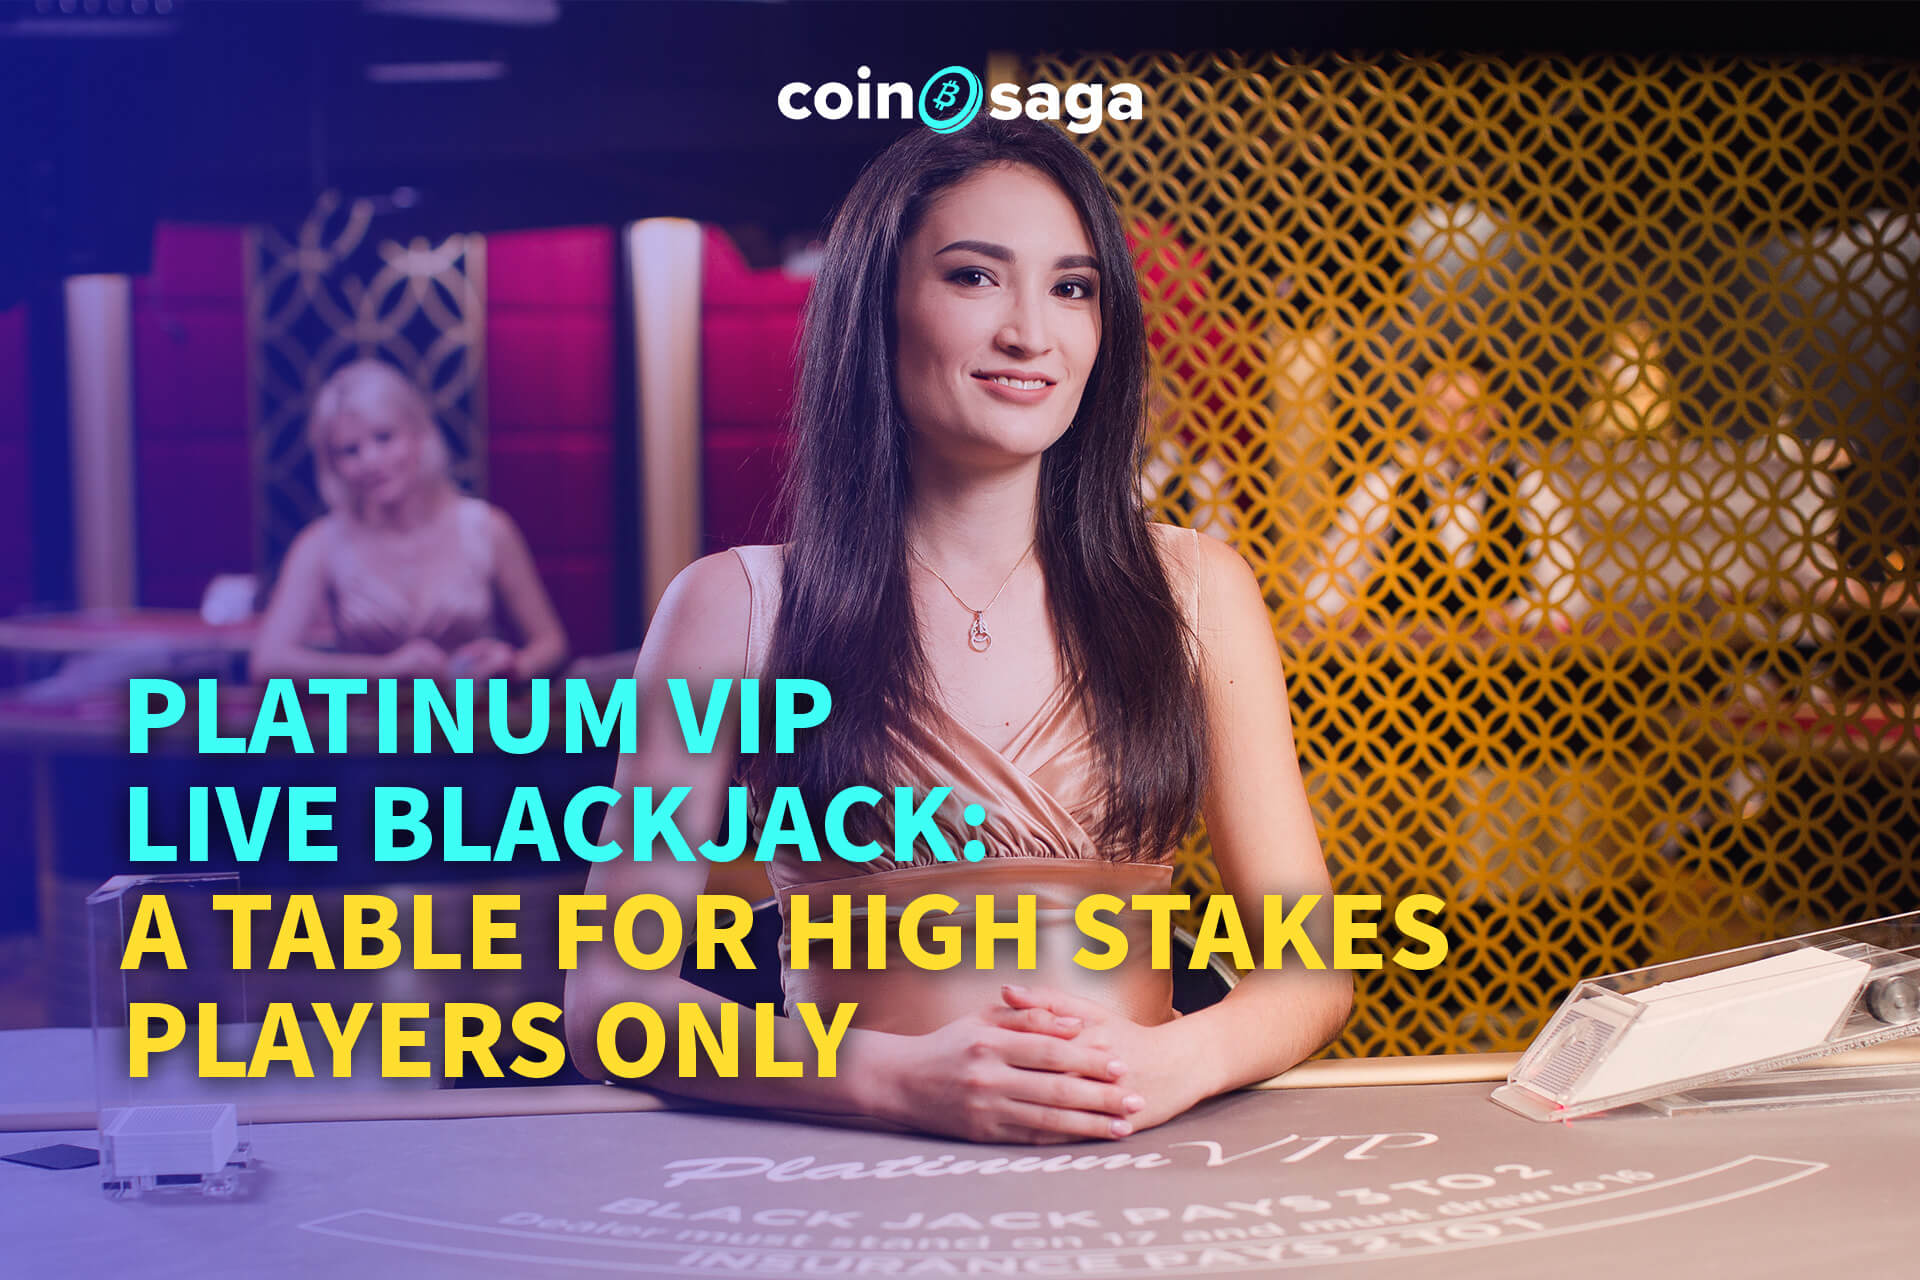 Platinum VIP Blackjack